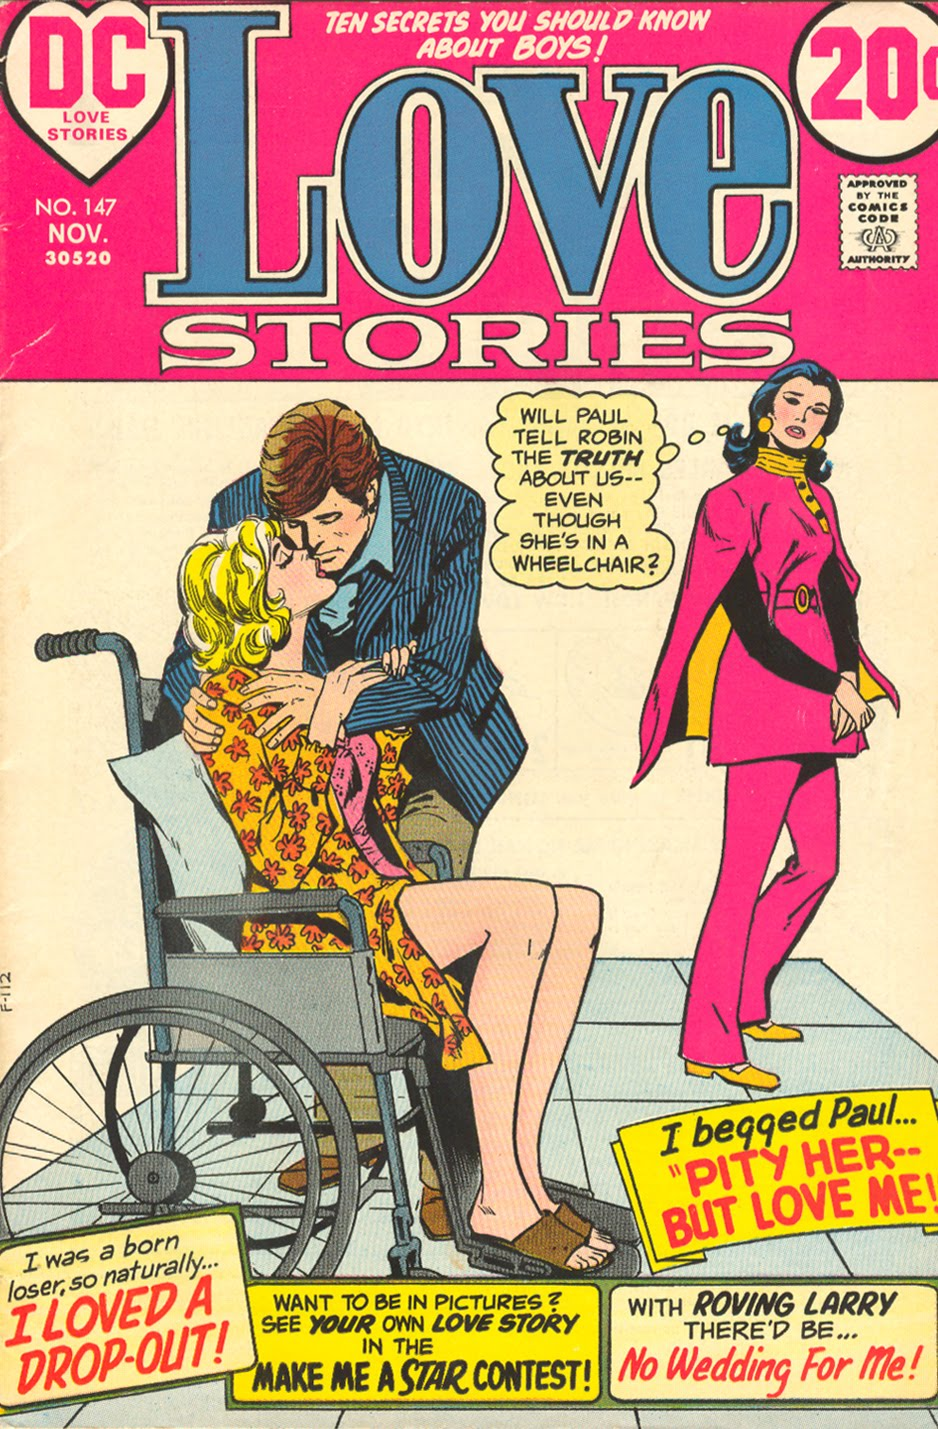 """DIAGNOSIS: Hit by a car while trying to catch up with two-timing Paul """"Pity Her -- But Love Me!""""  Love Stories  #147 (November 1972)"""